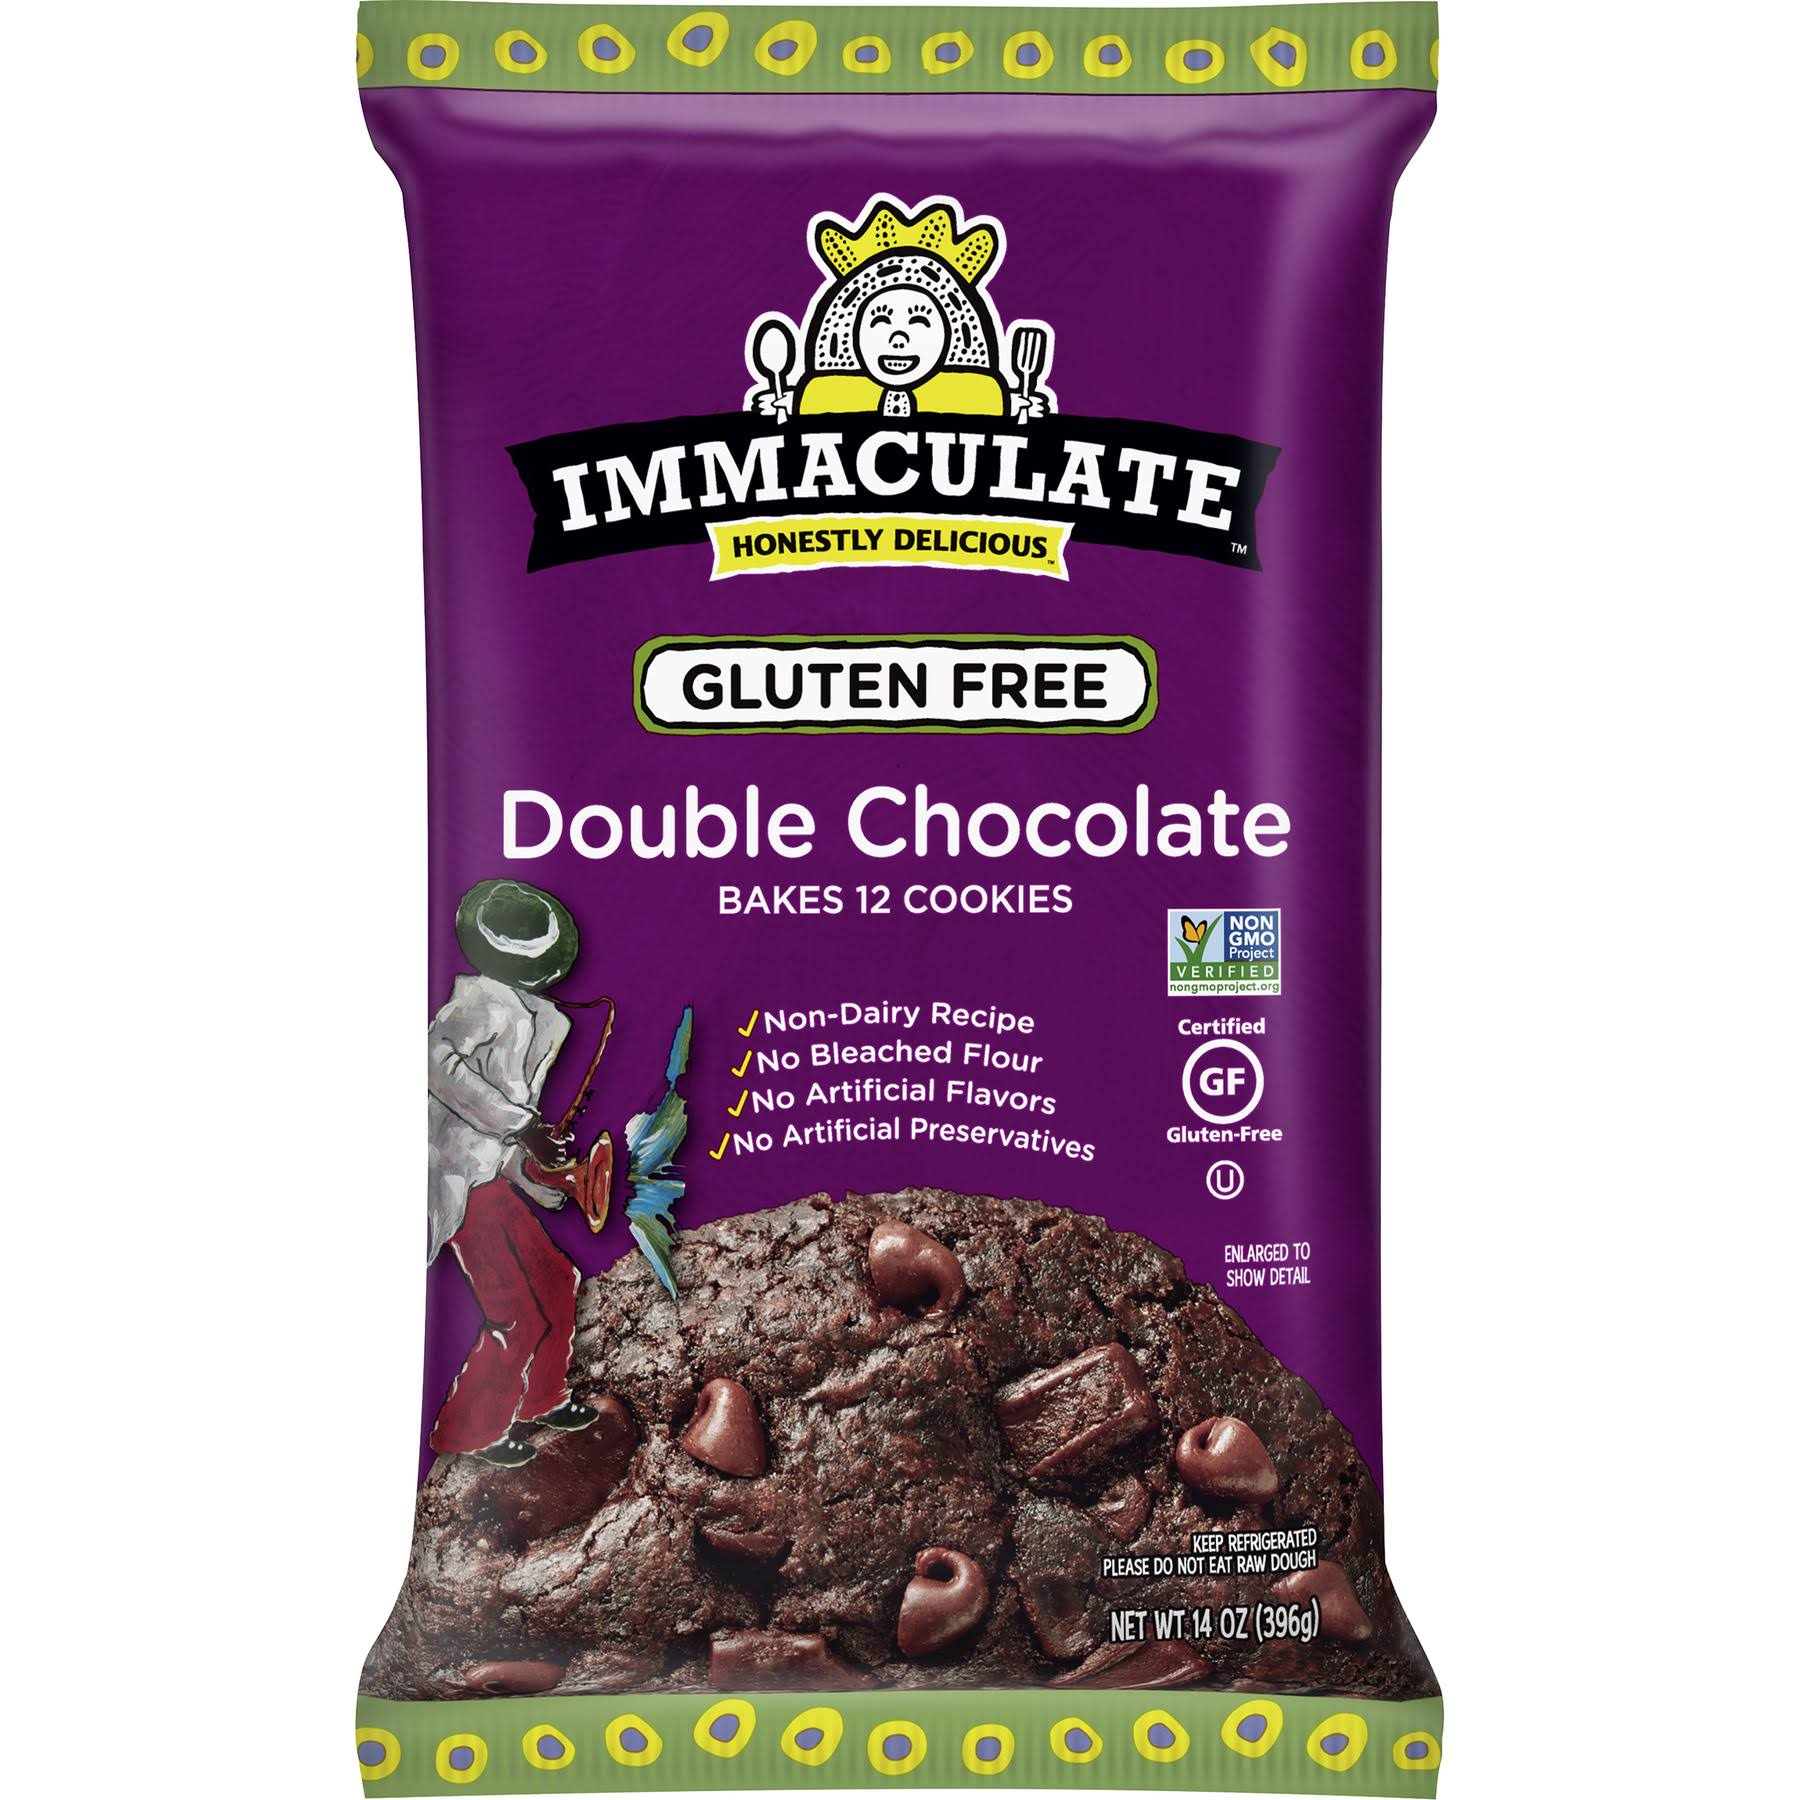 Immaculate Baking Co Gluten Free Cookie Dough - Fudge Brownie, 14oz, 12ct